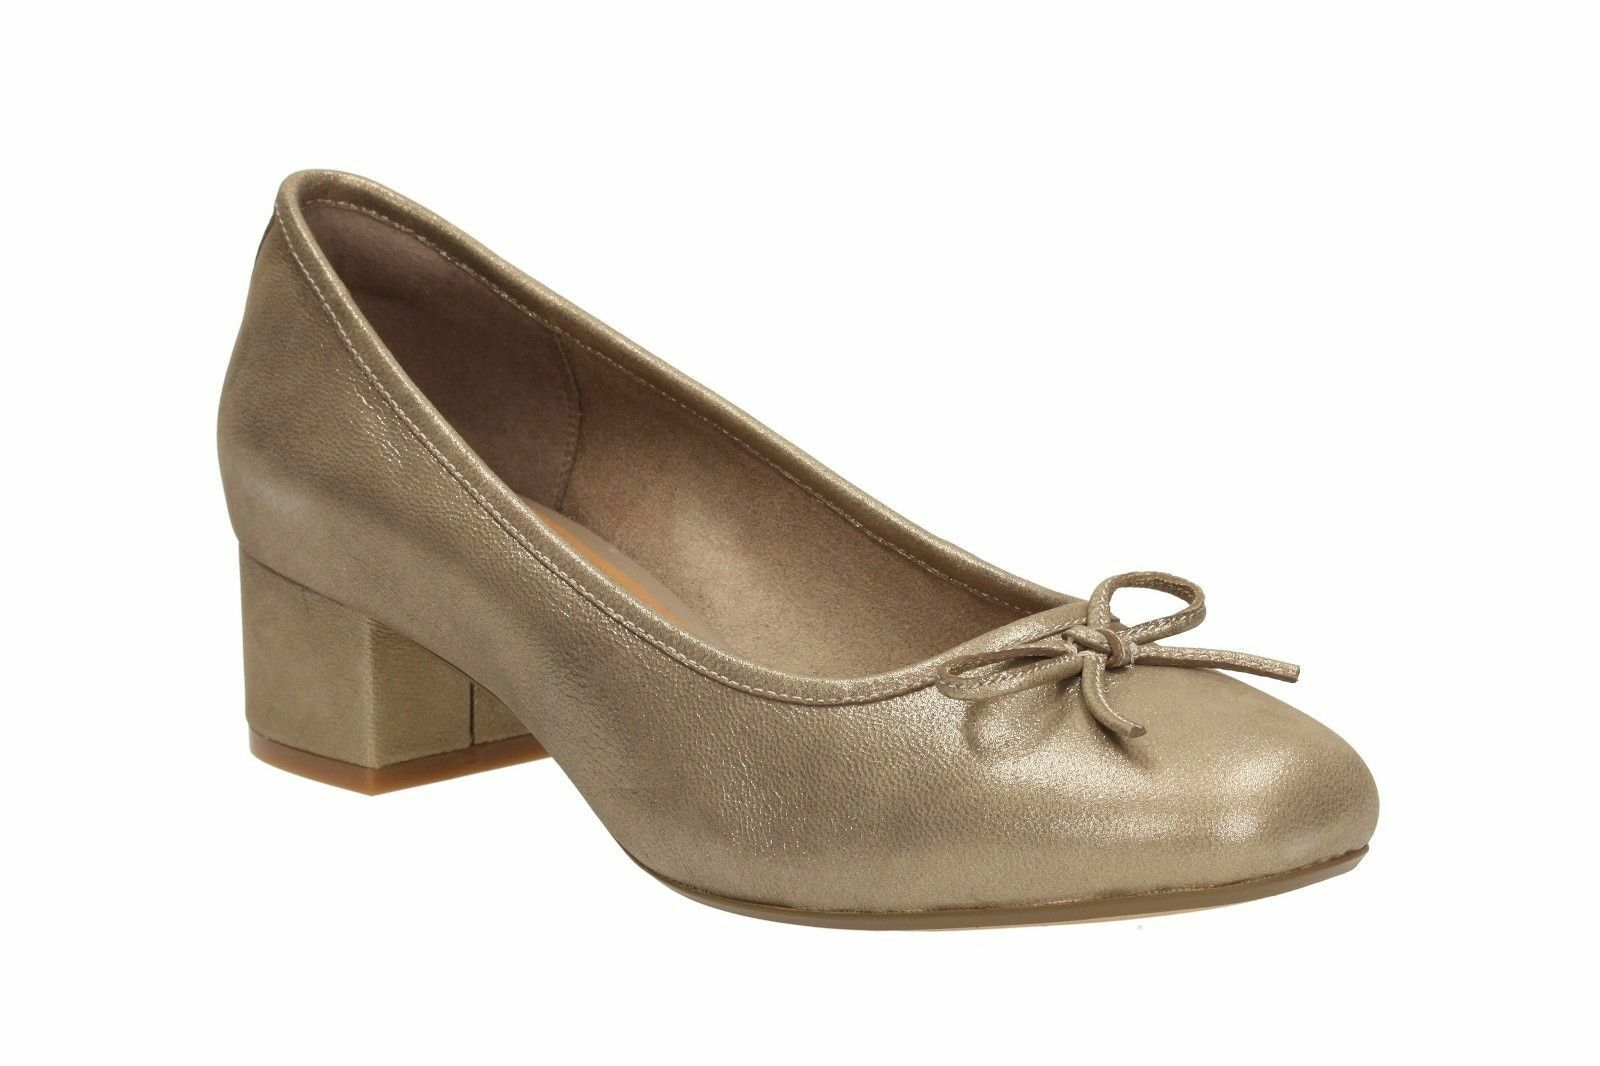 Clarks Women Cala Lucky Lucky Lucky gold Leather Low Heel Cushioned Slip On Court shoes D Fit a39466